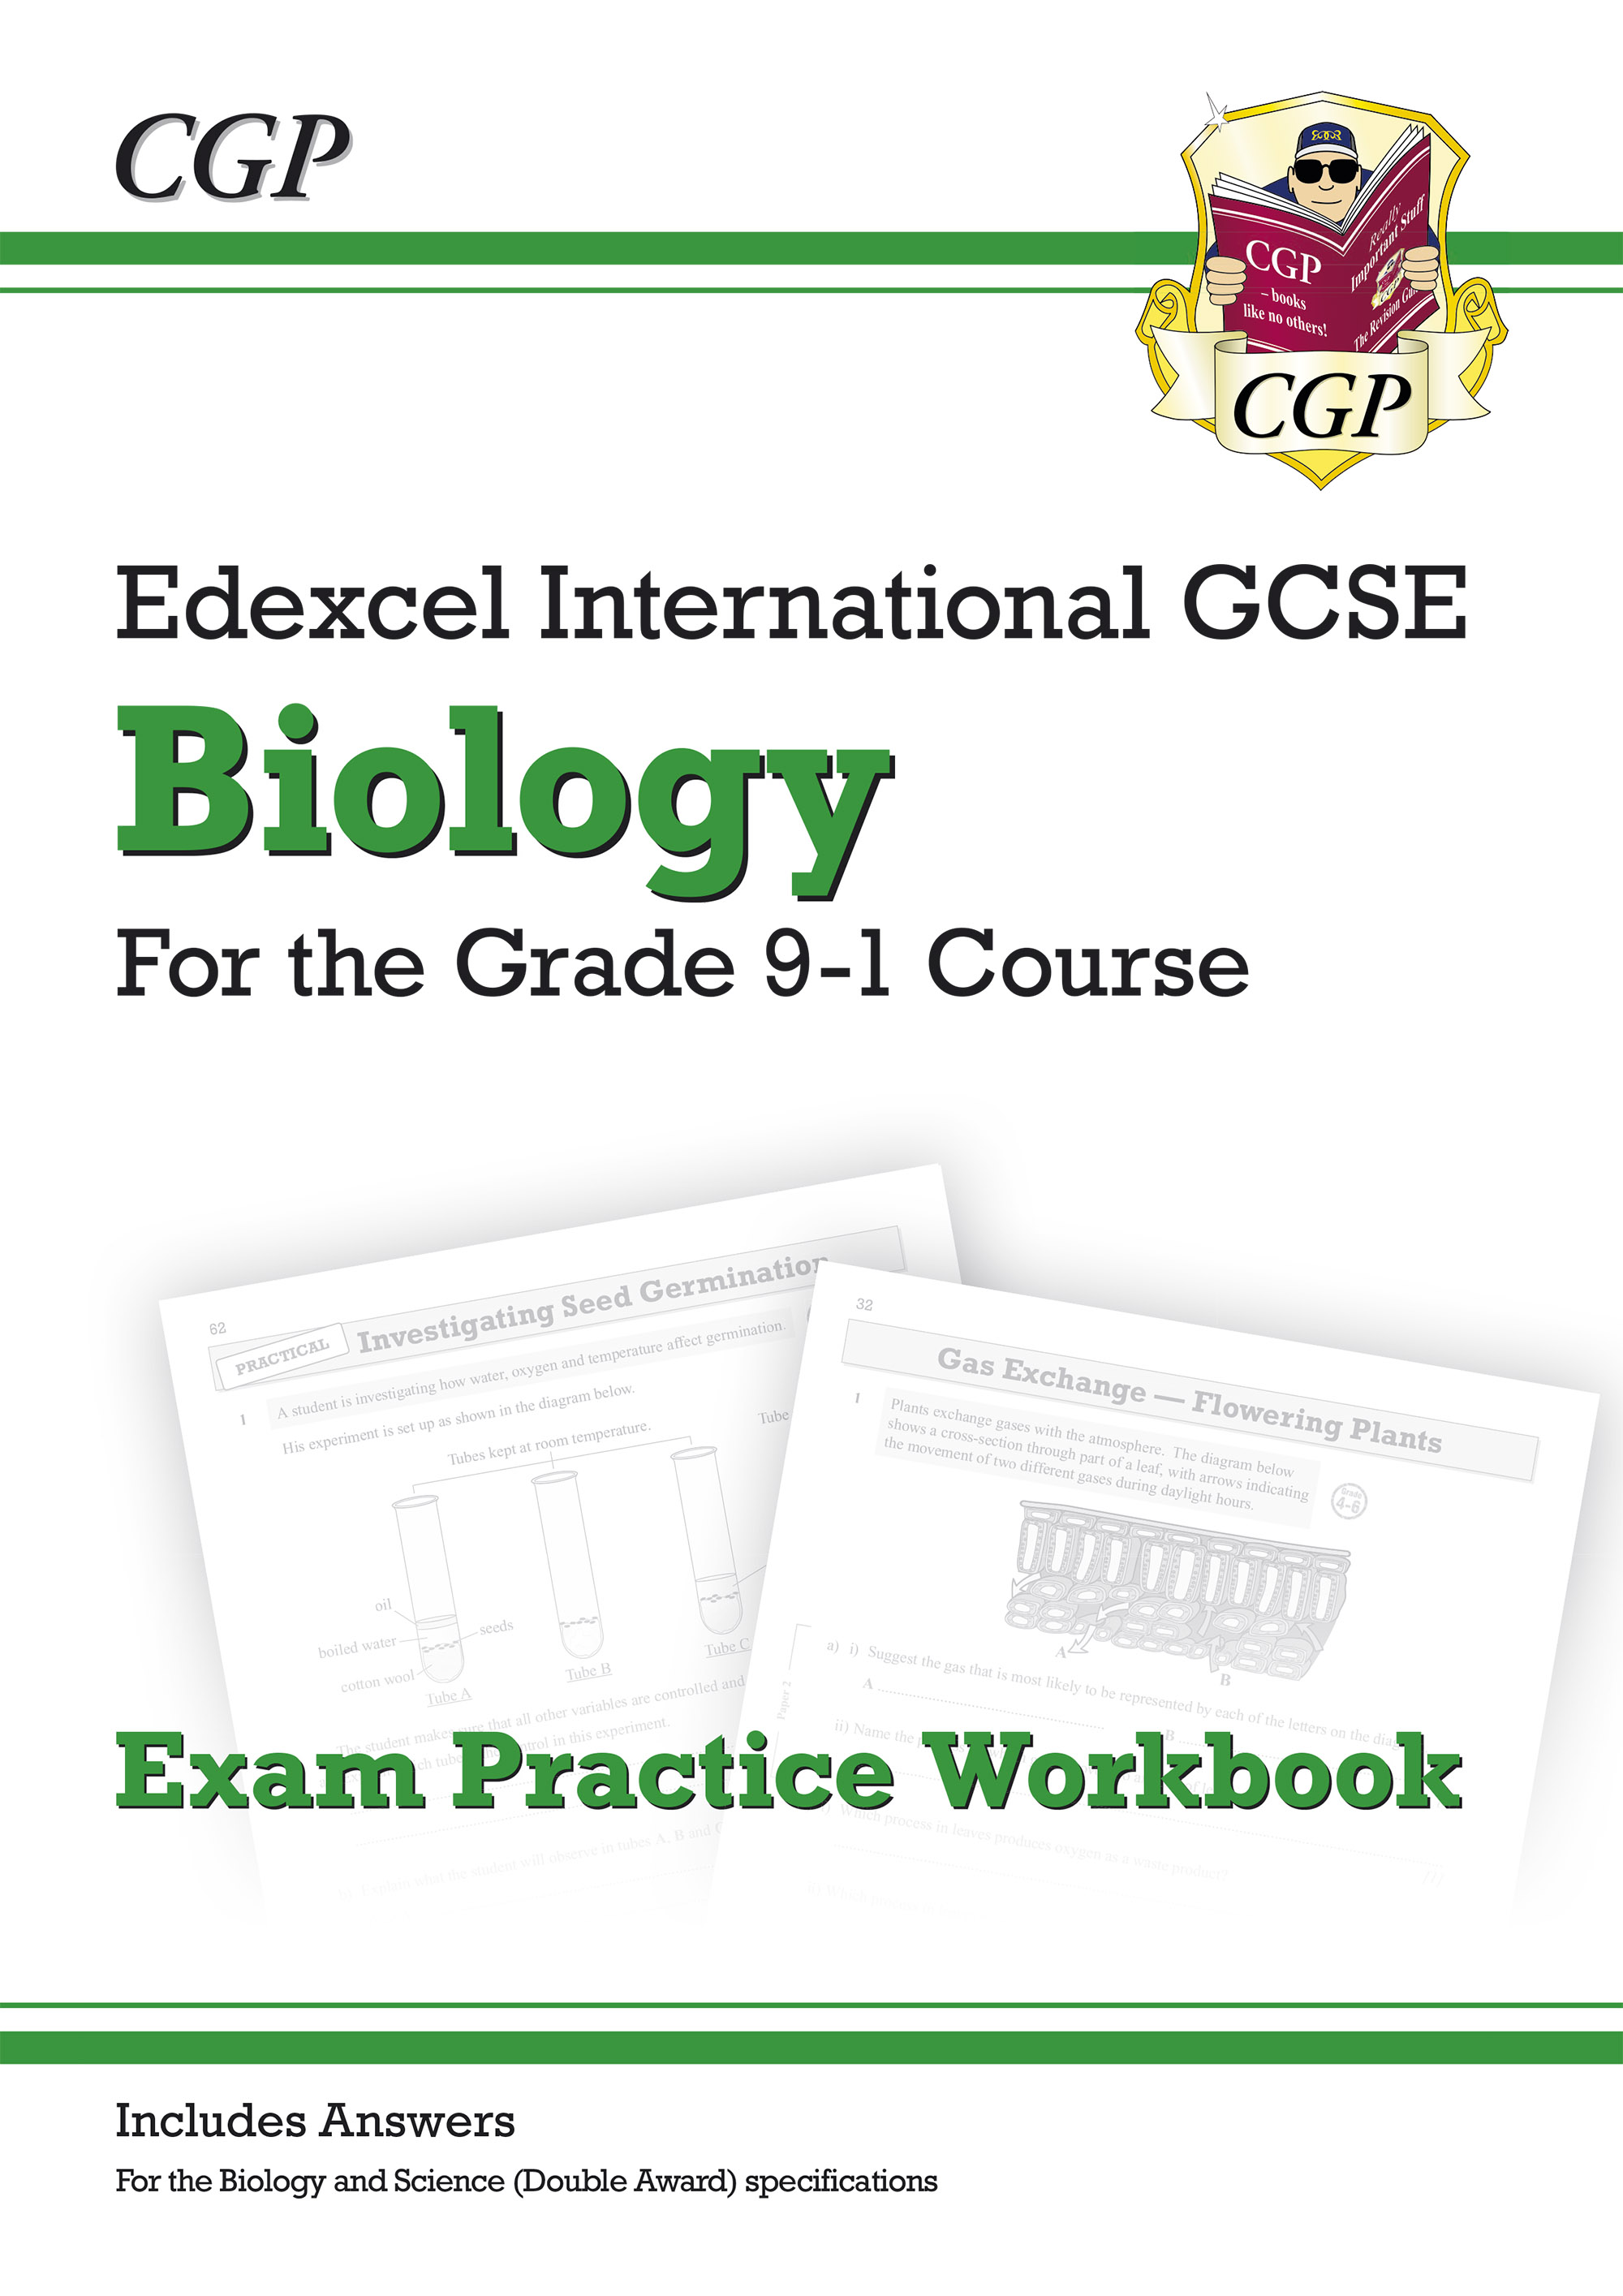 BEQI42D - New Grade 9-1 Edexcel International GCSE Biology: Exam Practice Workbook (includes Answers